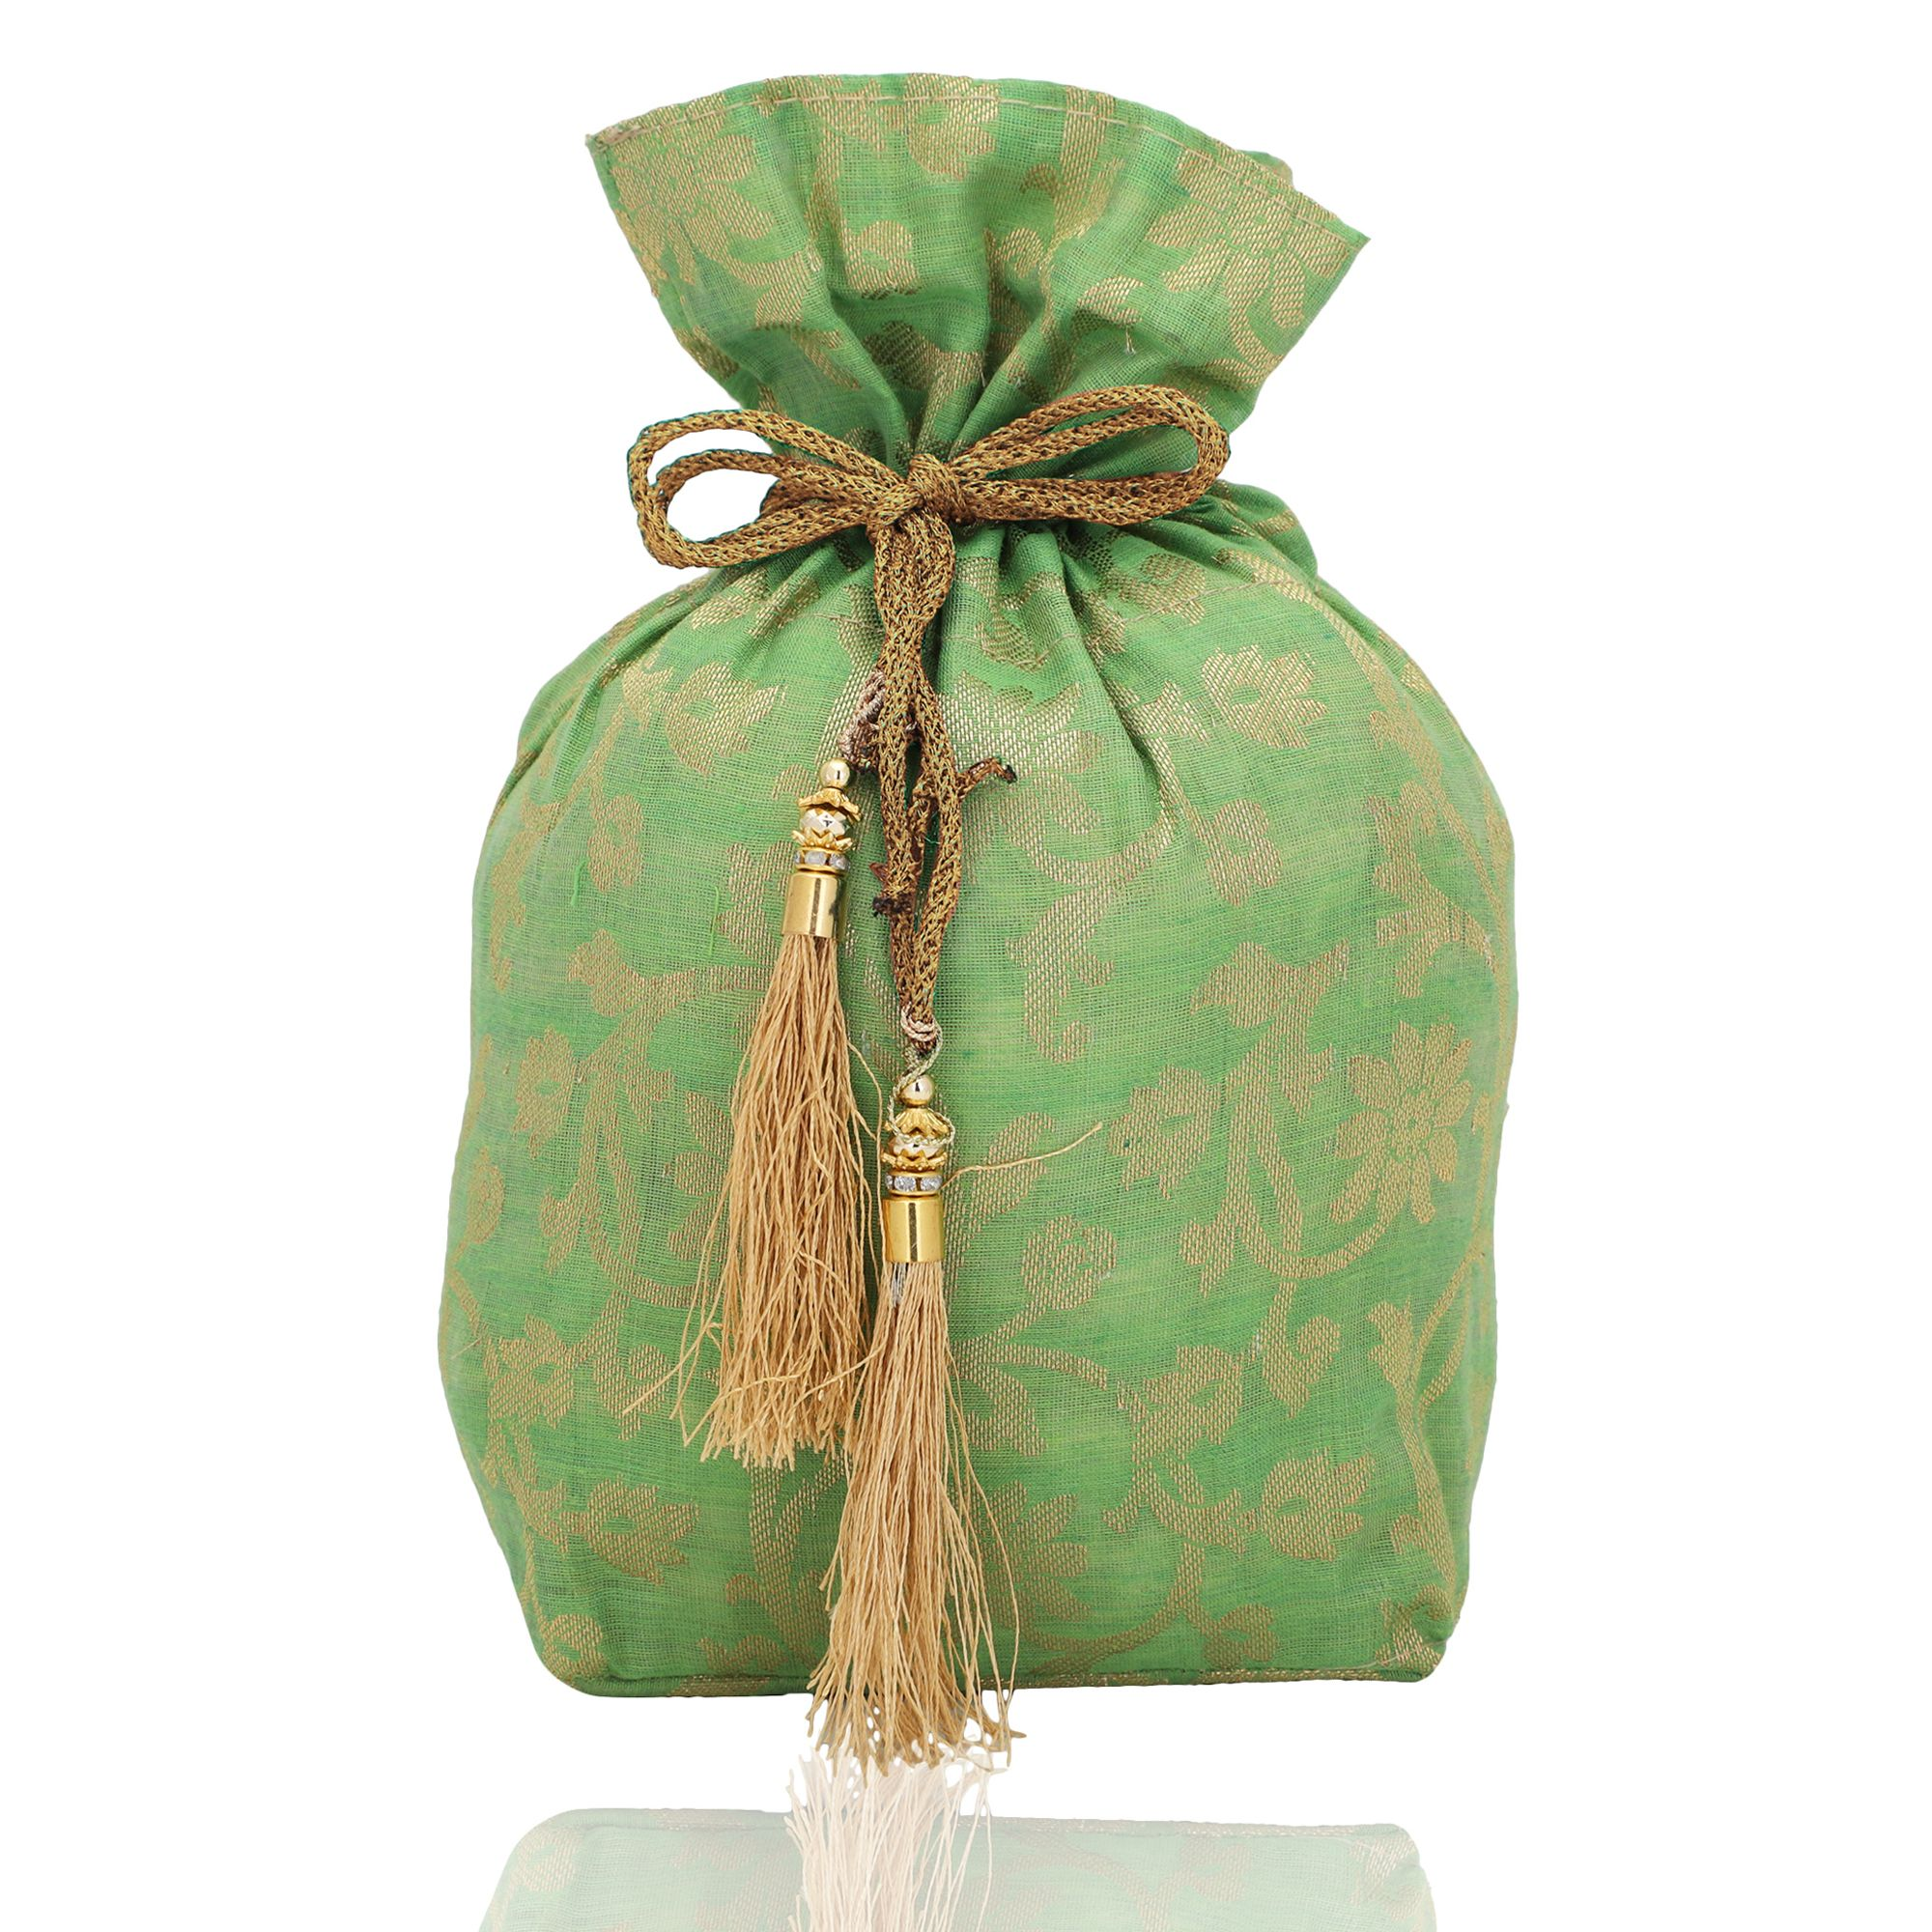 Banarasi Chanderi Jacquard Potli Bag in Light Green